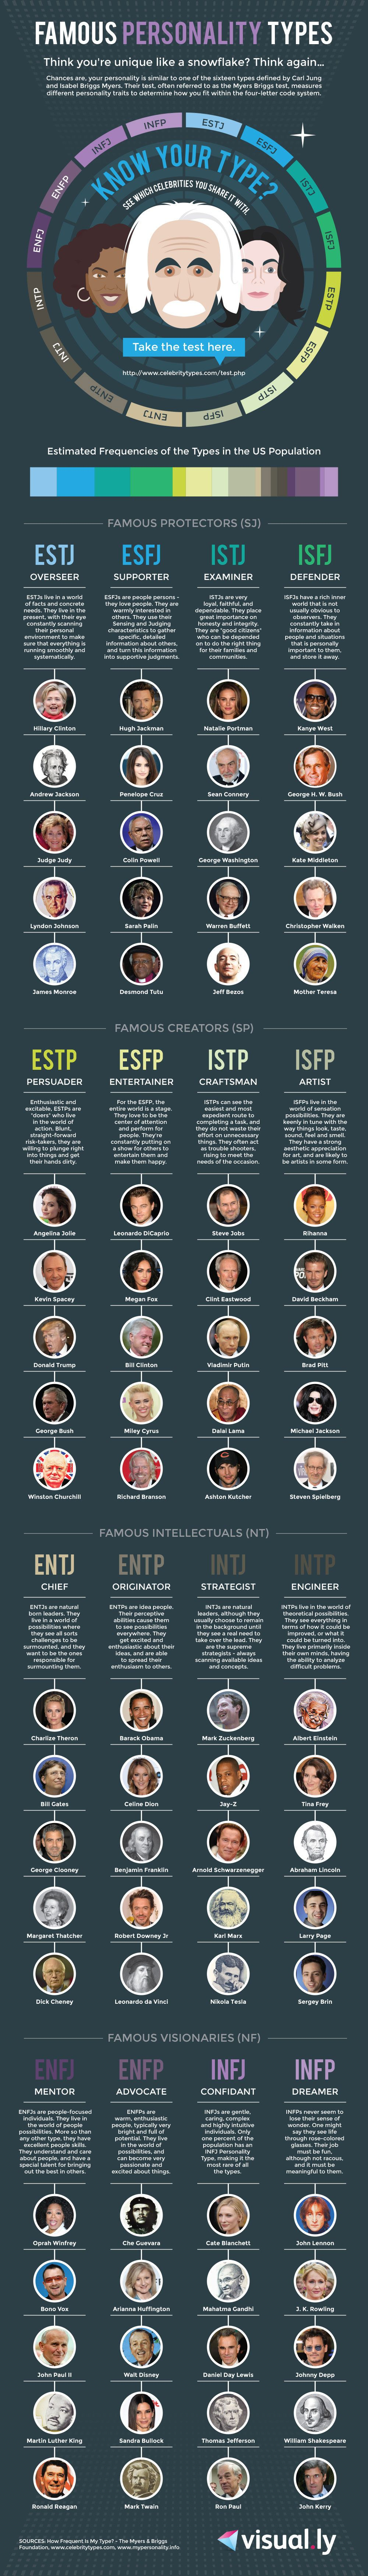 Your Favorite Celebrities Personality Types In One Helpful Chart Personality Types Myers Briggs Personality Types Personality